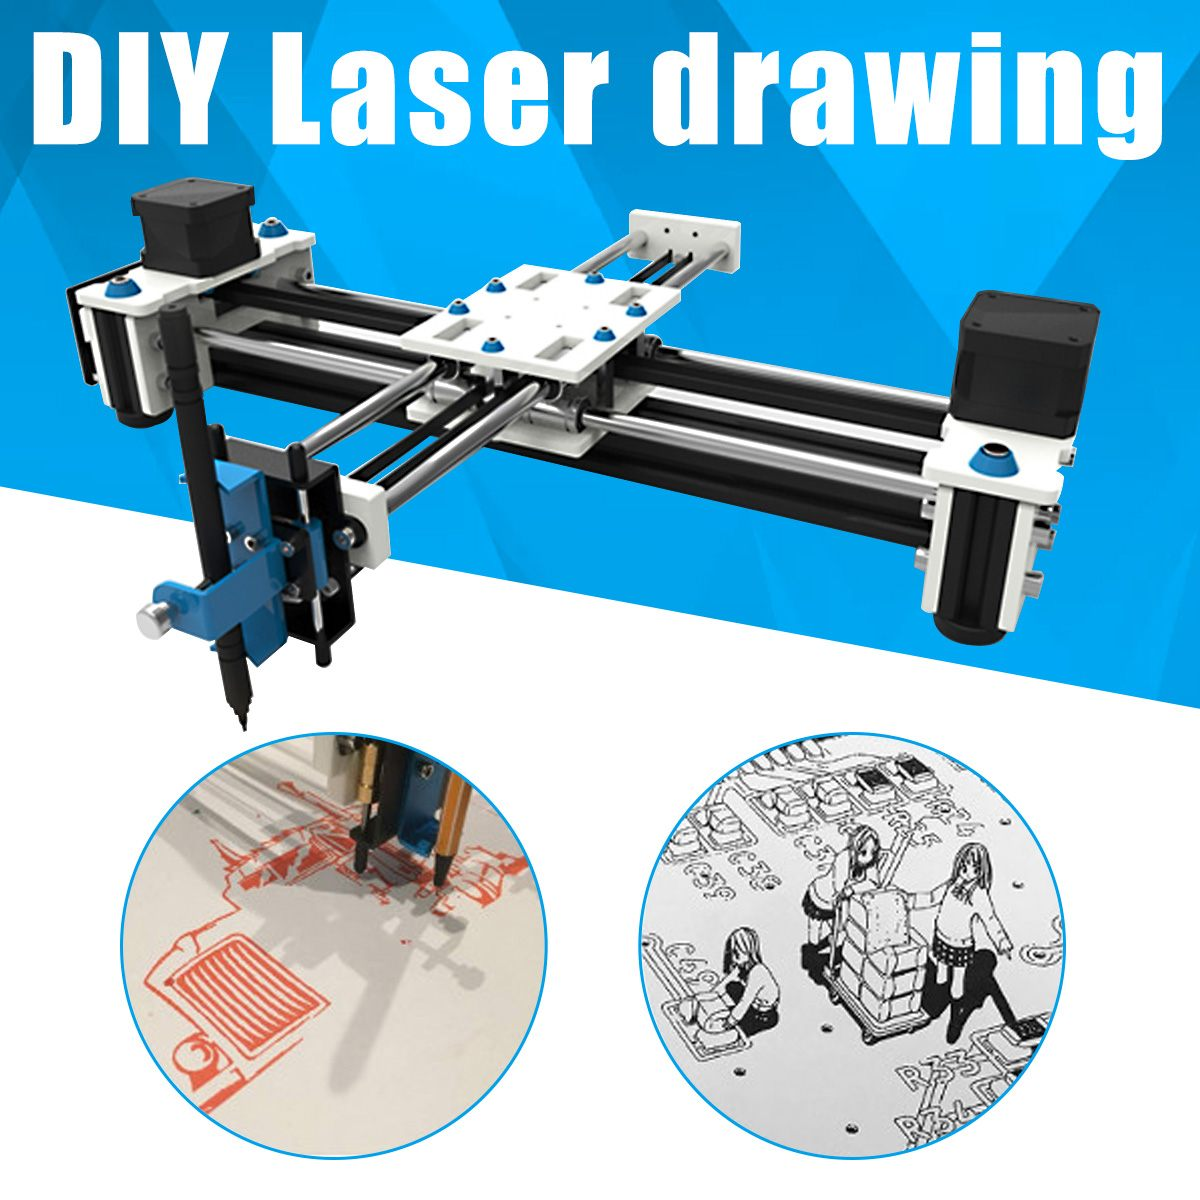 Hot Sale Mini XY 2 Axis CNC Plotter Pen USB DIY Laser Drawing Machine Engraving Area Desktop Drawing Writing Robot 280x200mm